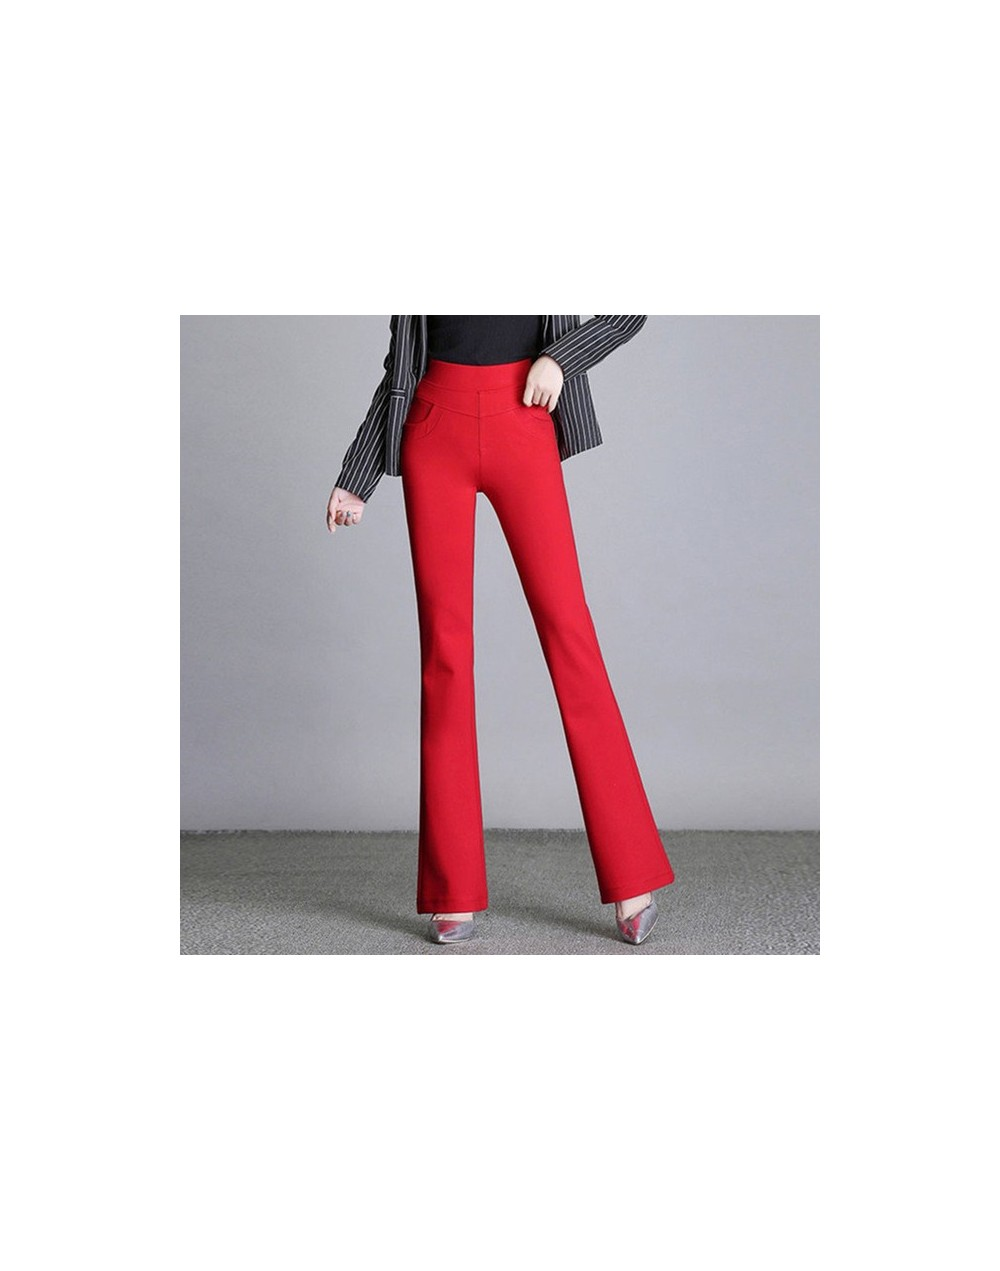 2018 autumn and winter new women's red bell-bottoms women high waist large size blue elastic trousers fashion casual pants M...